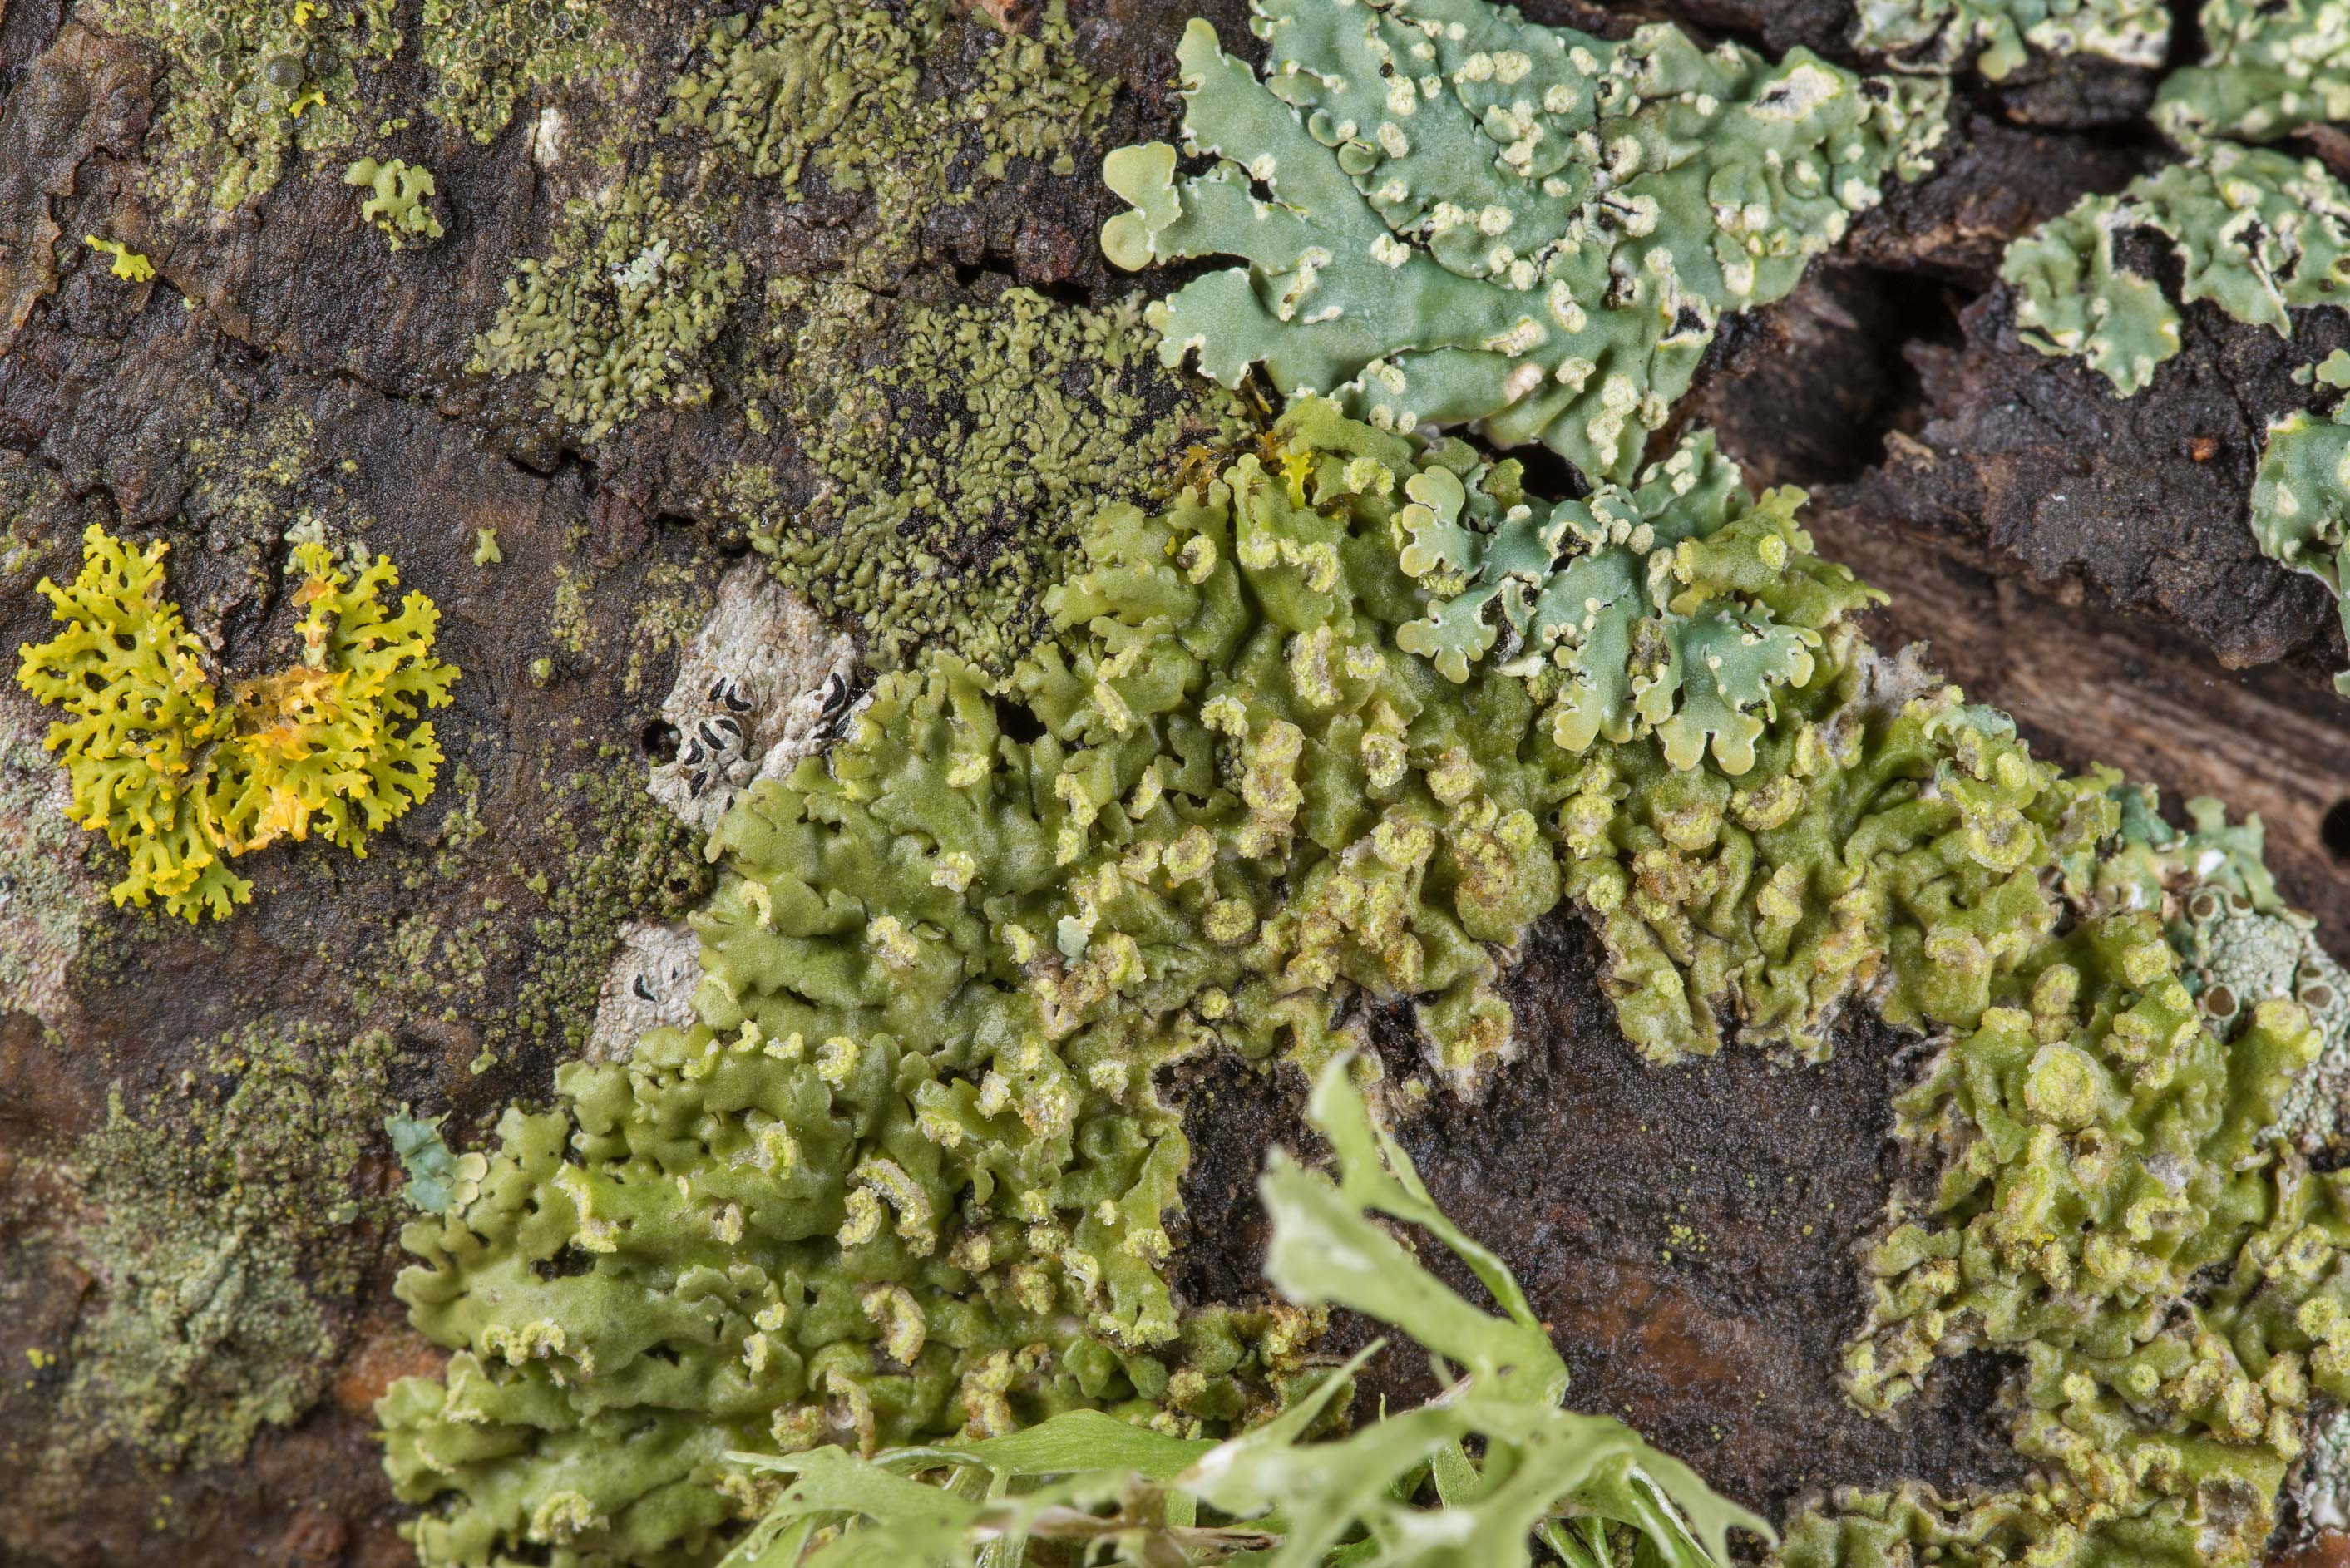 Cryptic rosette lichen (Physciella chloantha) on...near Park Hudson Trail. Bryan, Texas